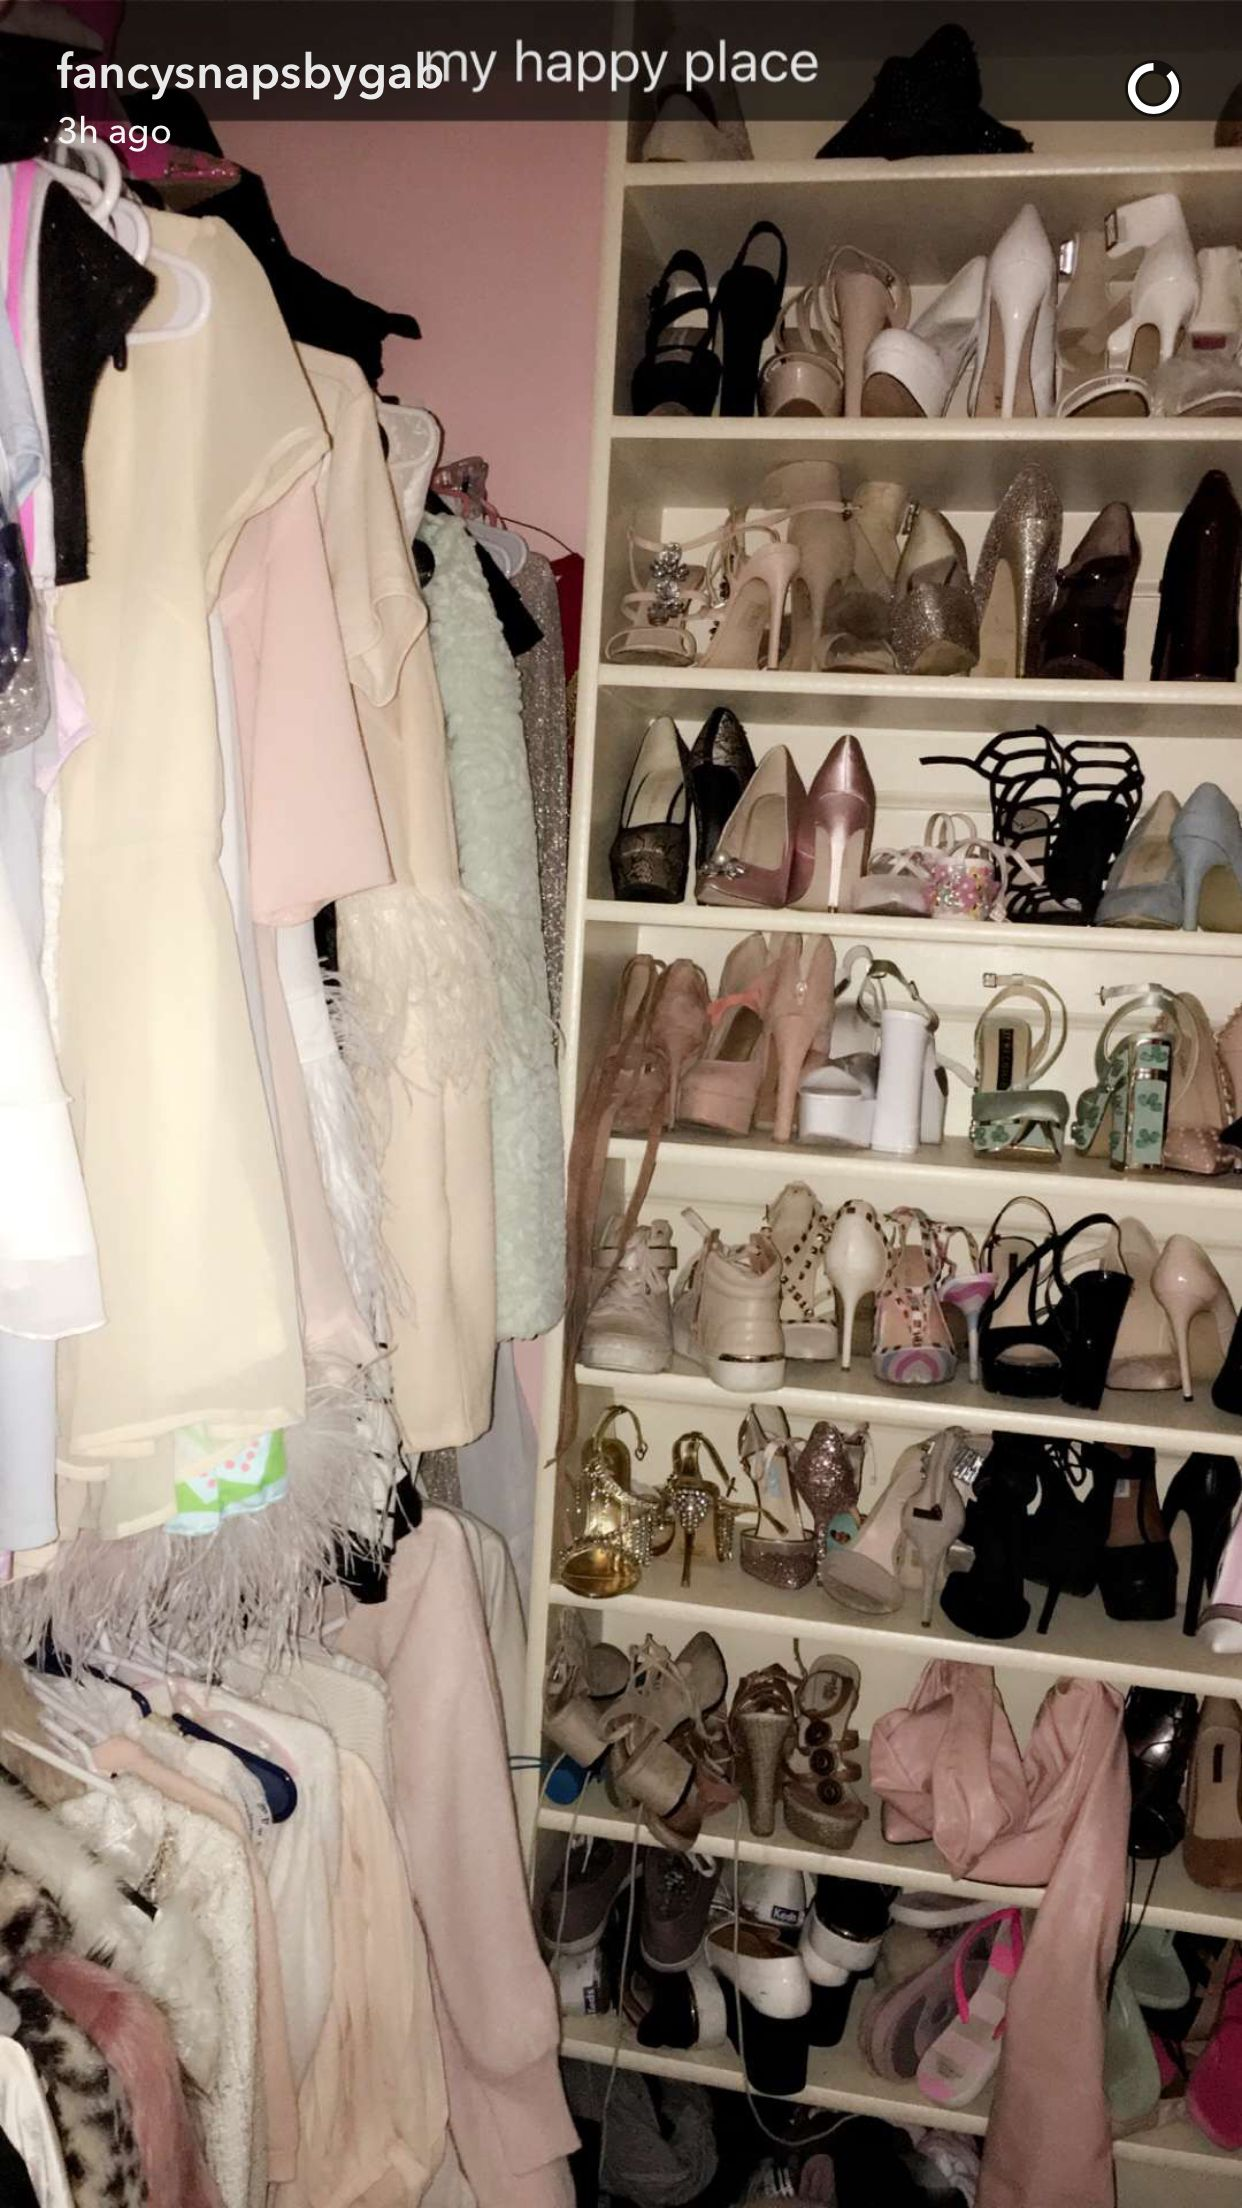 gabi's closet is my dreams